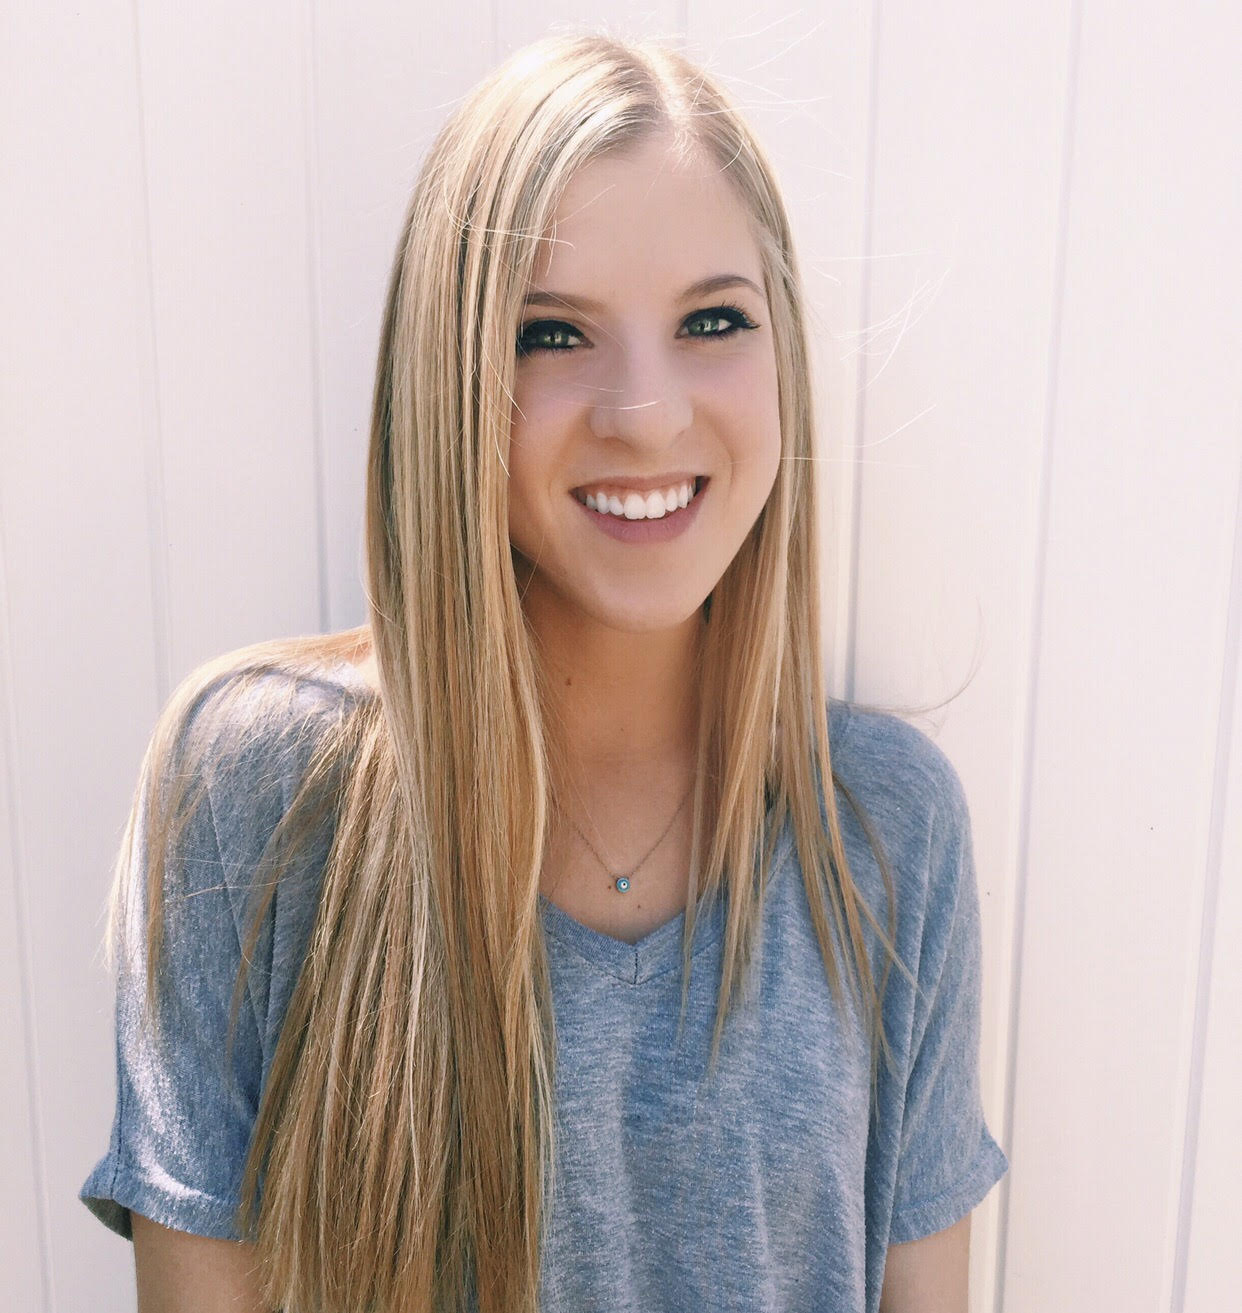 Sarah Colandreo is a senior studying Economics at the    University of Arizona   . She is from San Clemente, California and is currently a Money Mentor.